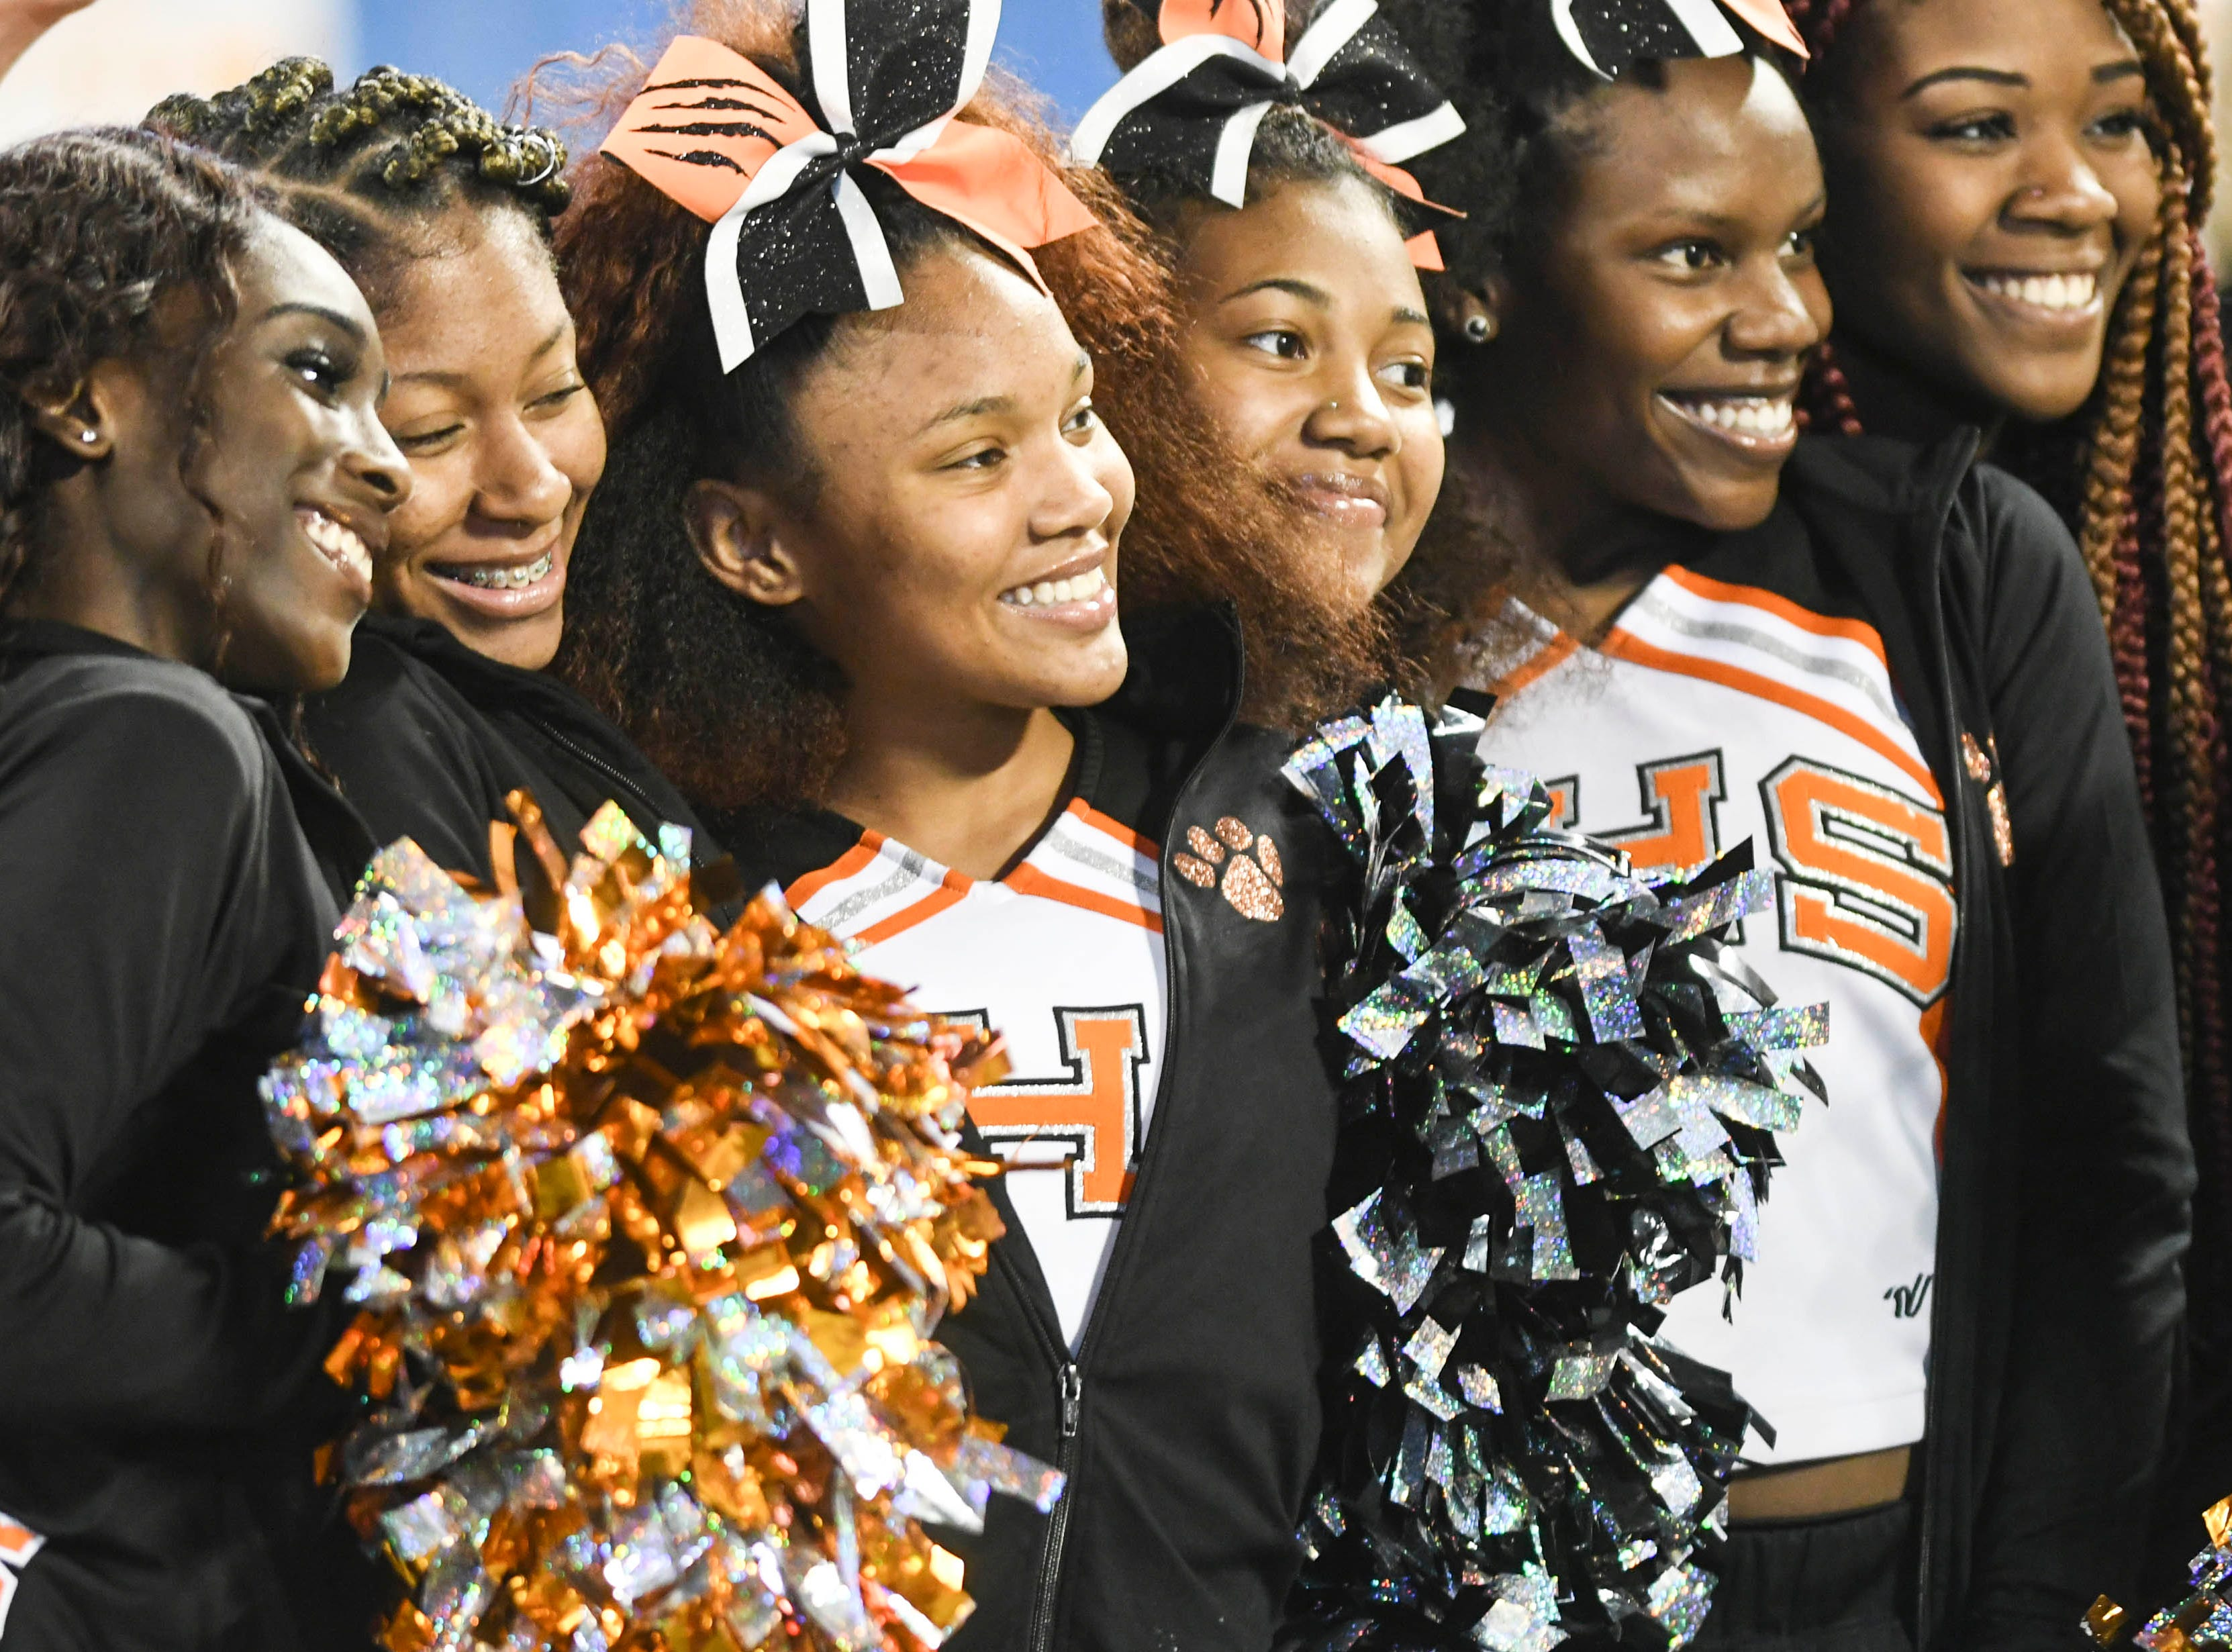 Members of the Cocoa High cheerleading squad pose for pictures during Thursday's Class 4A football state championship.